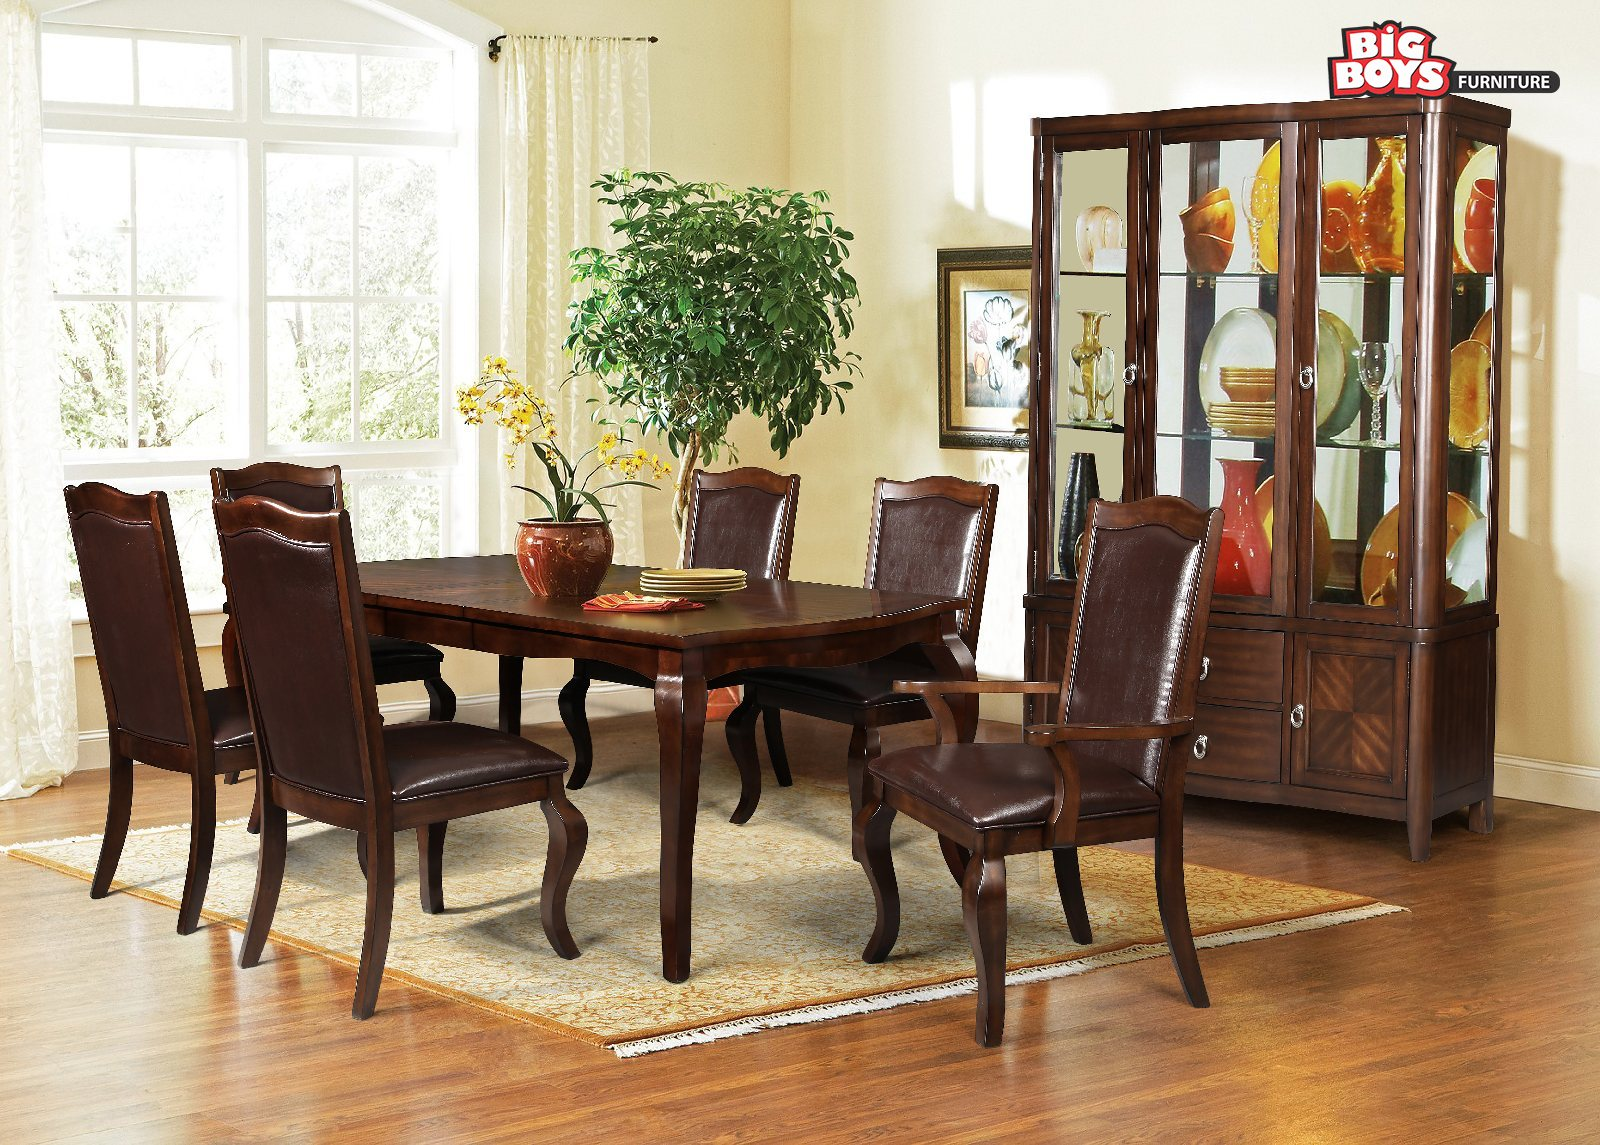 Nice dining set make your house perfect look